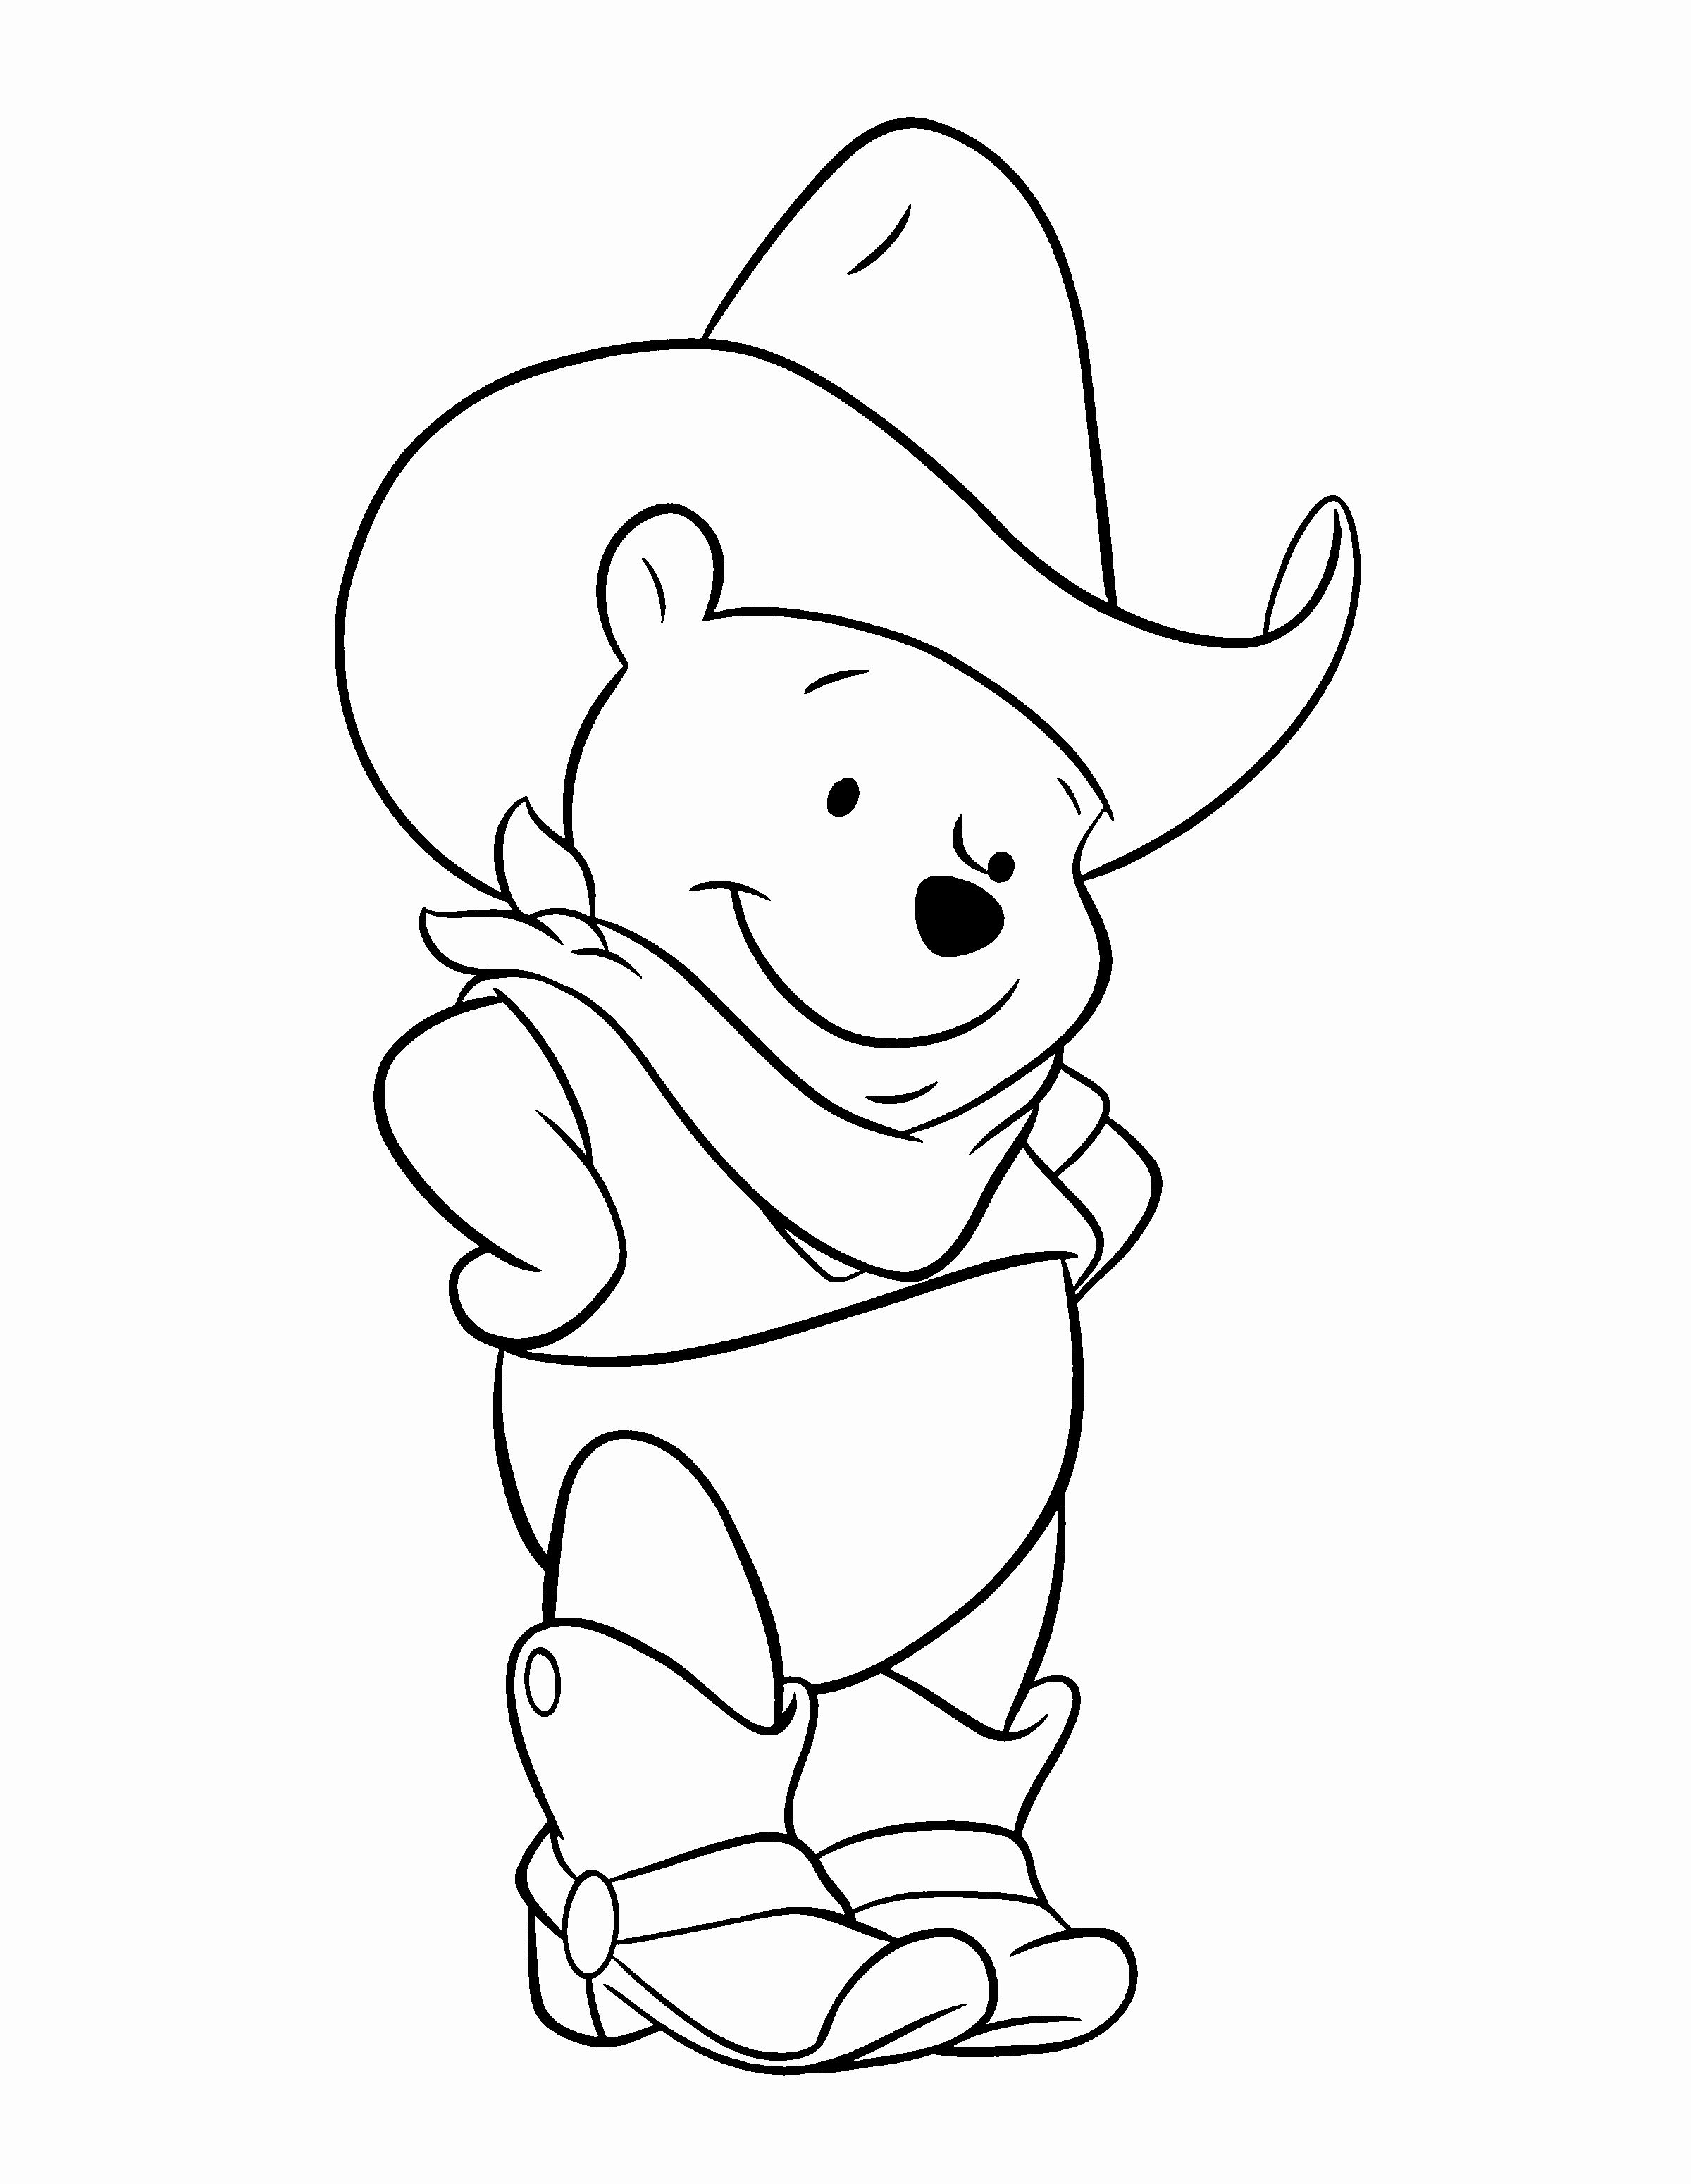 Baby Dog Disney Character Coloring Page Free Printable Disney Coloring Pages Featuring Di Mickey Coloring Pages Cartoon Coloring Pages Baby Disney Characters [ 2560 x 1810 Pixel ]